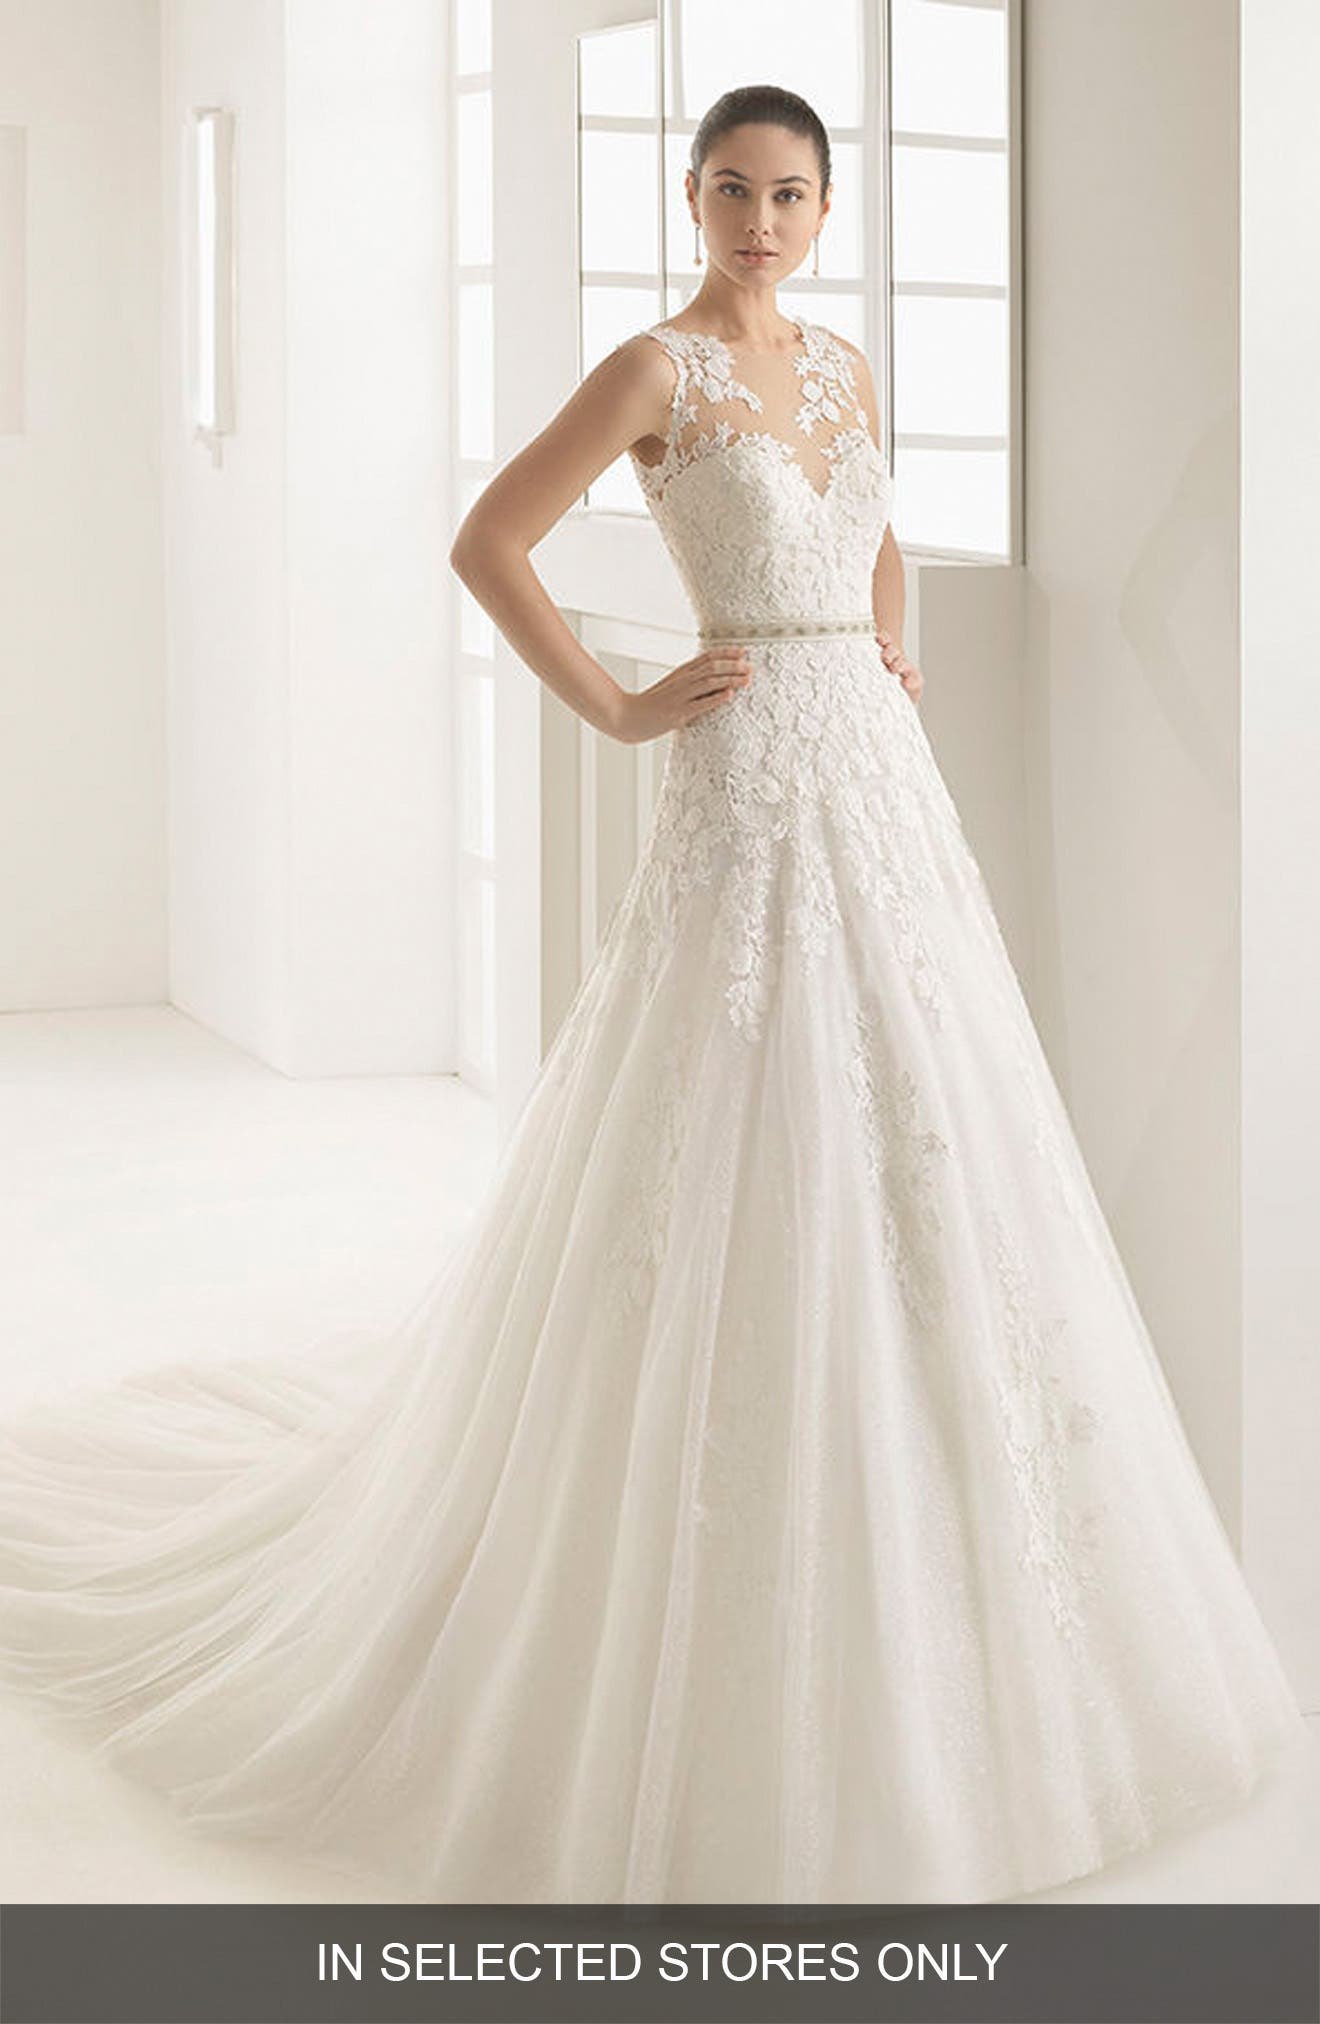 Oda Sleeveless Lace & Tulle Gown,                         Main,                         color, 250